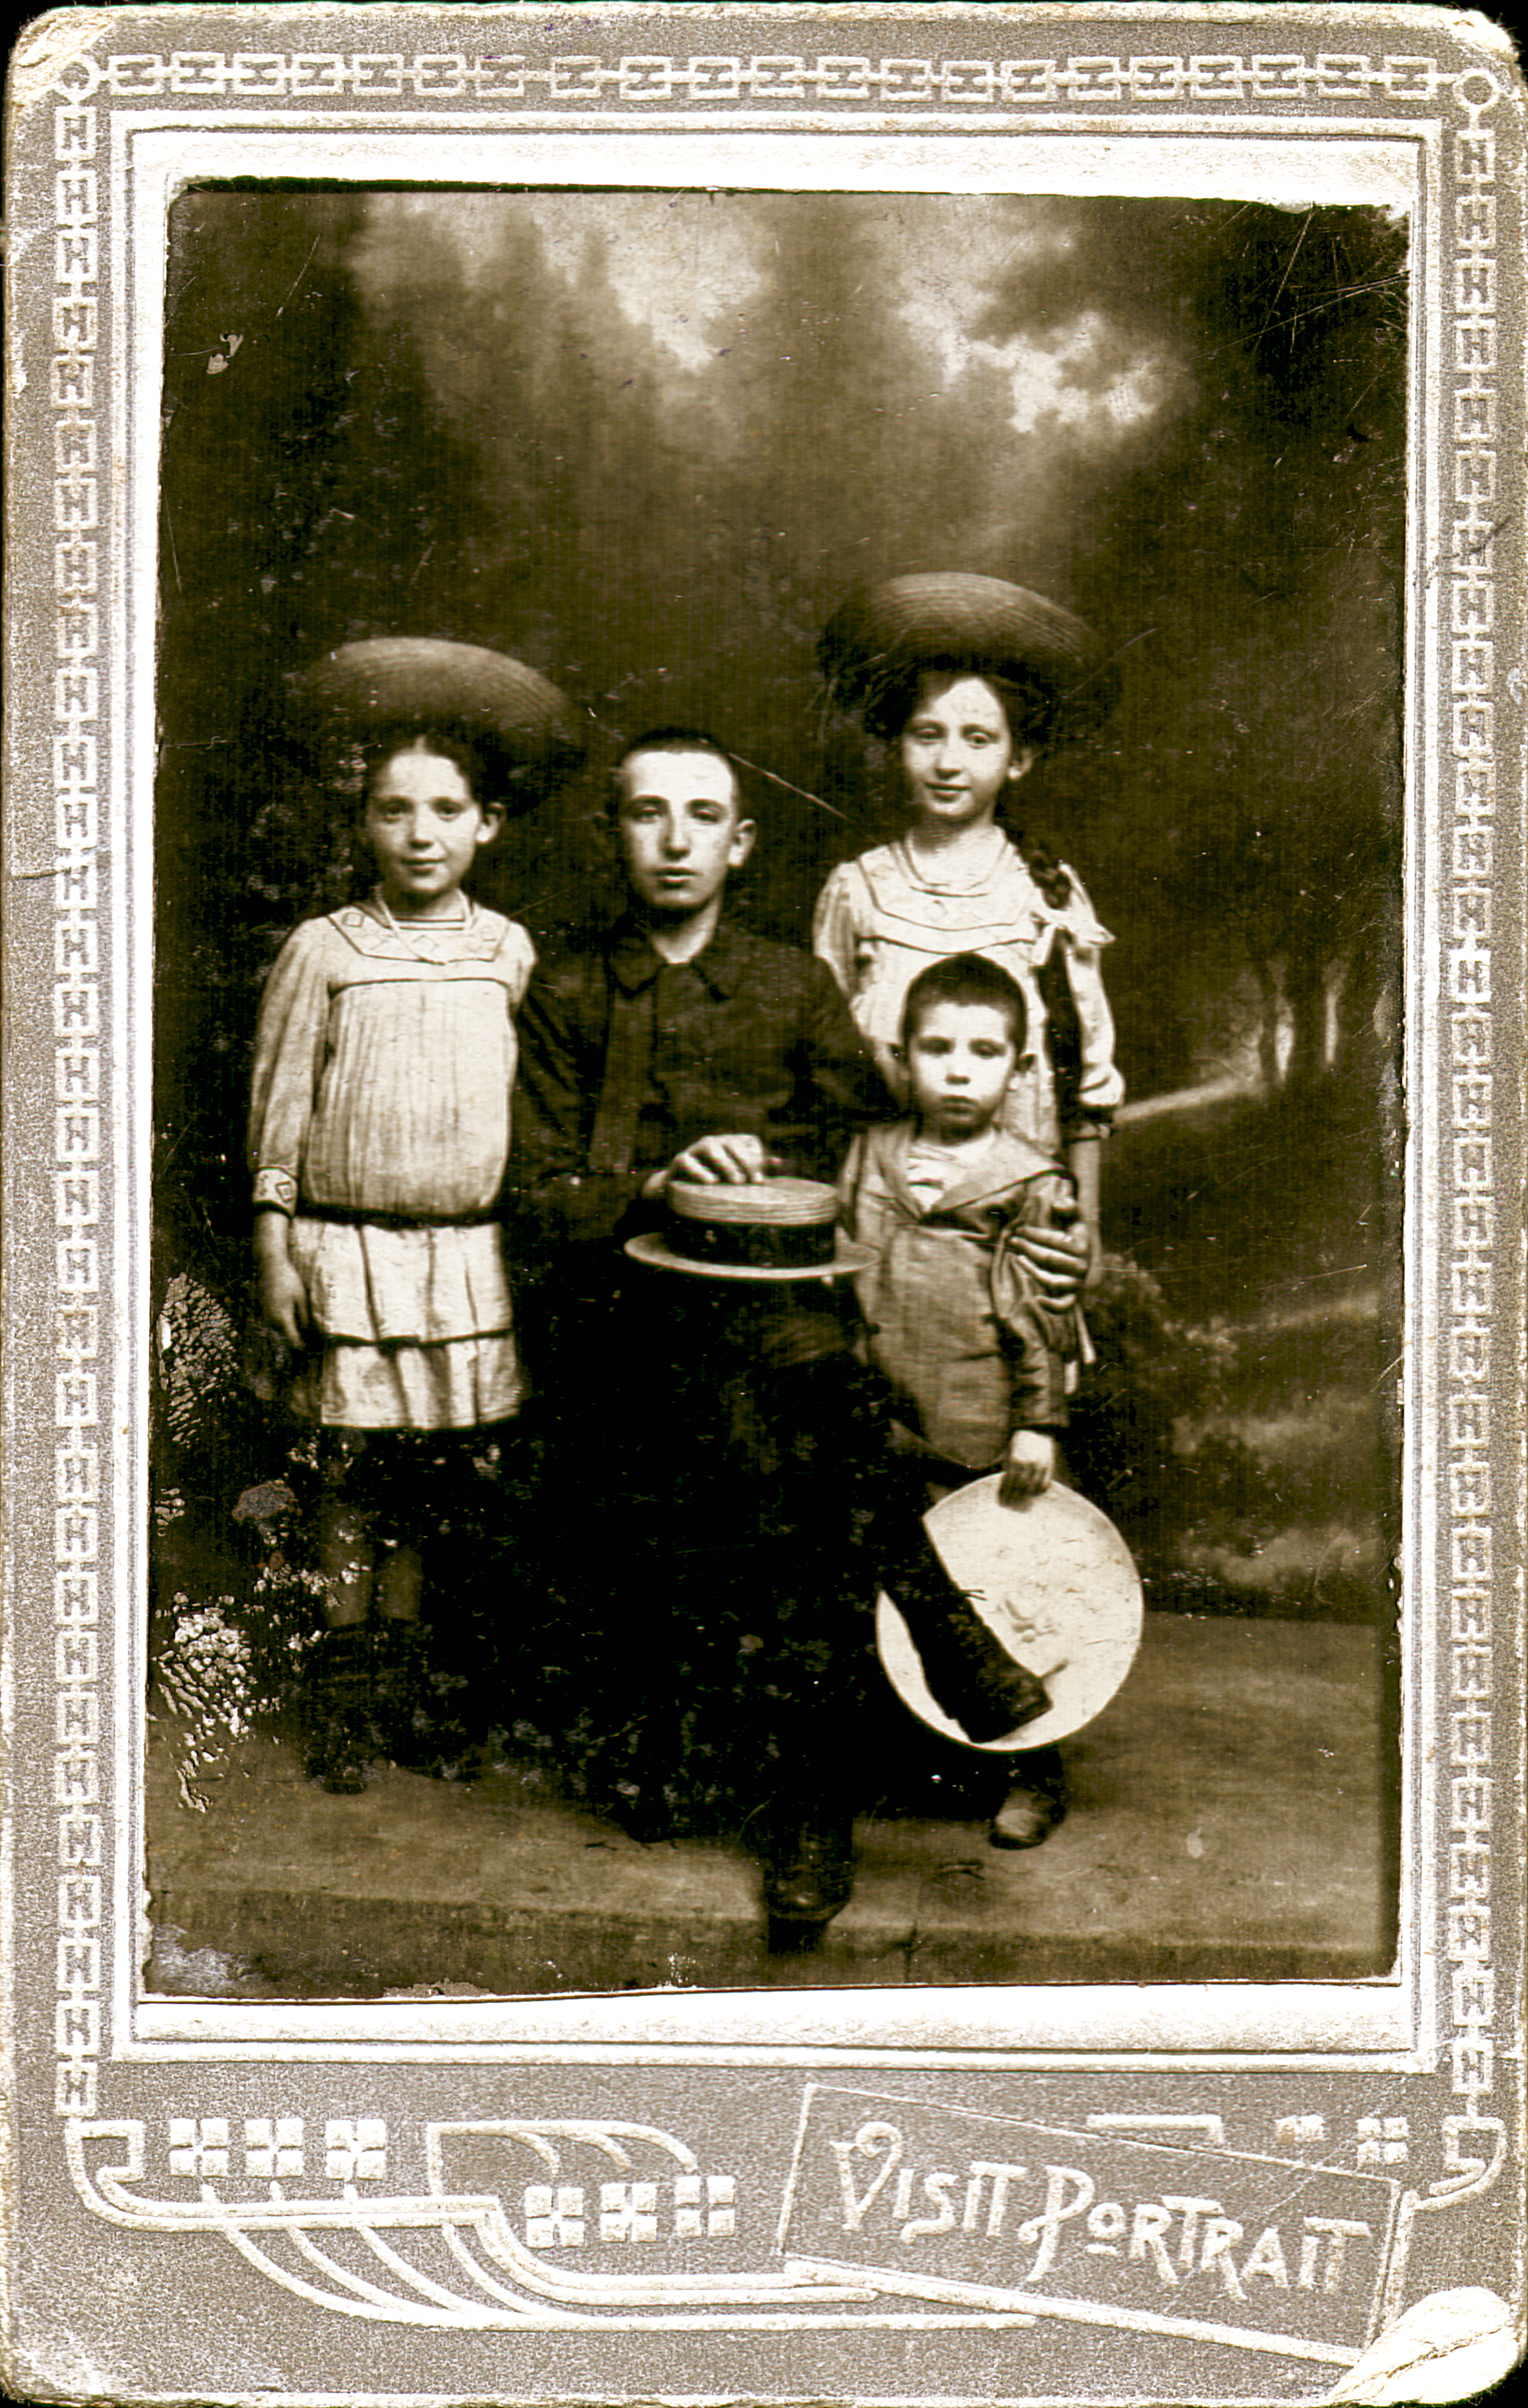 Leonora Acs as a young girl with her siblings